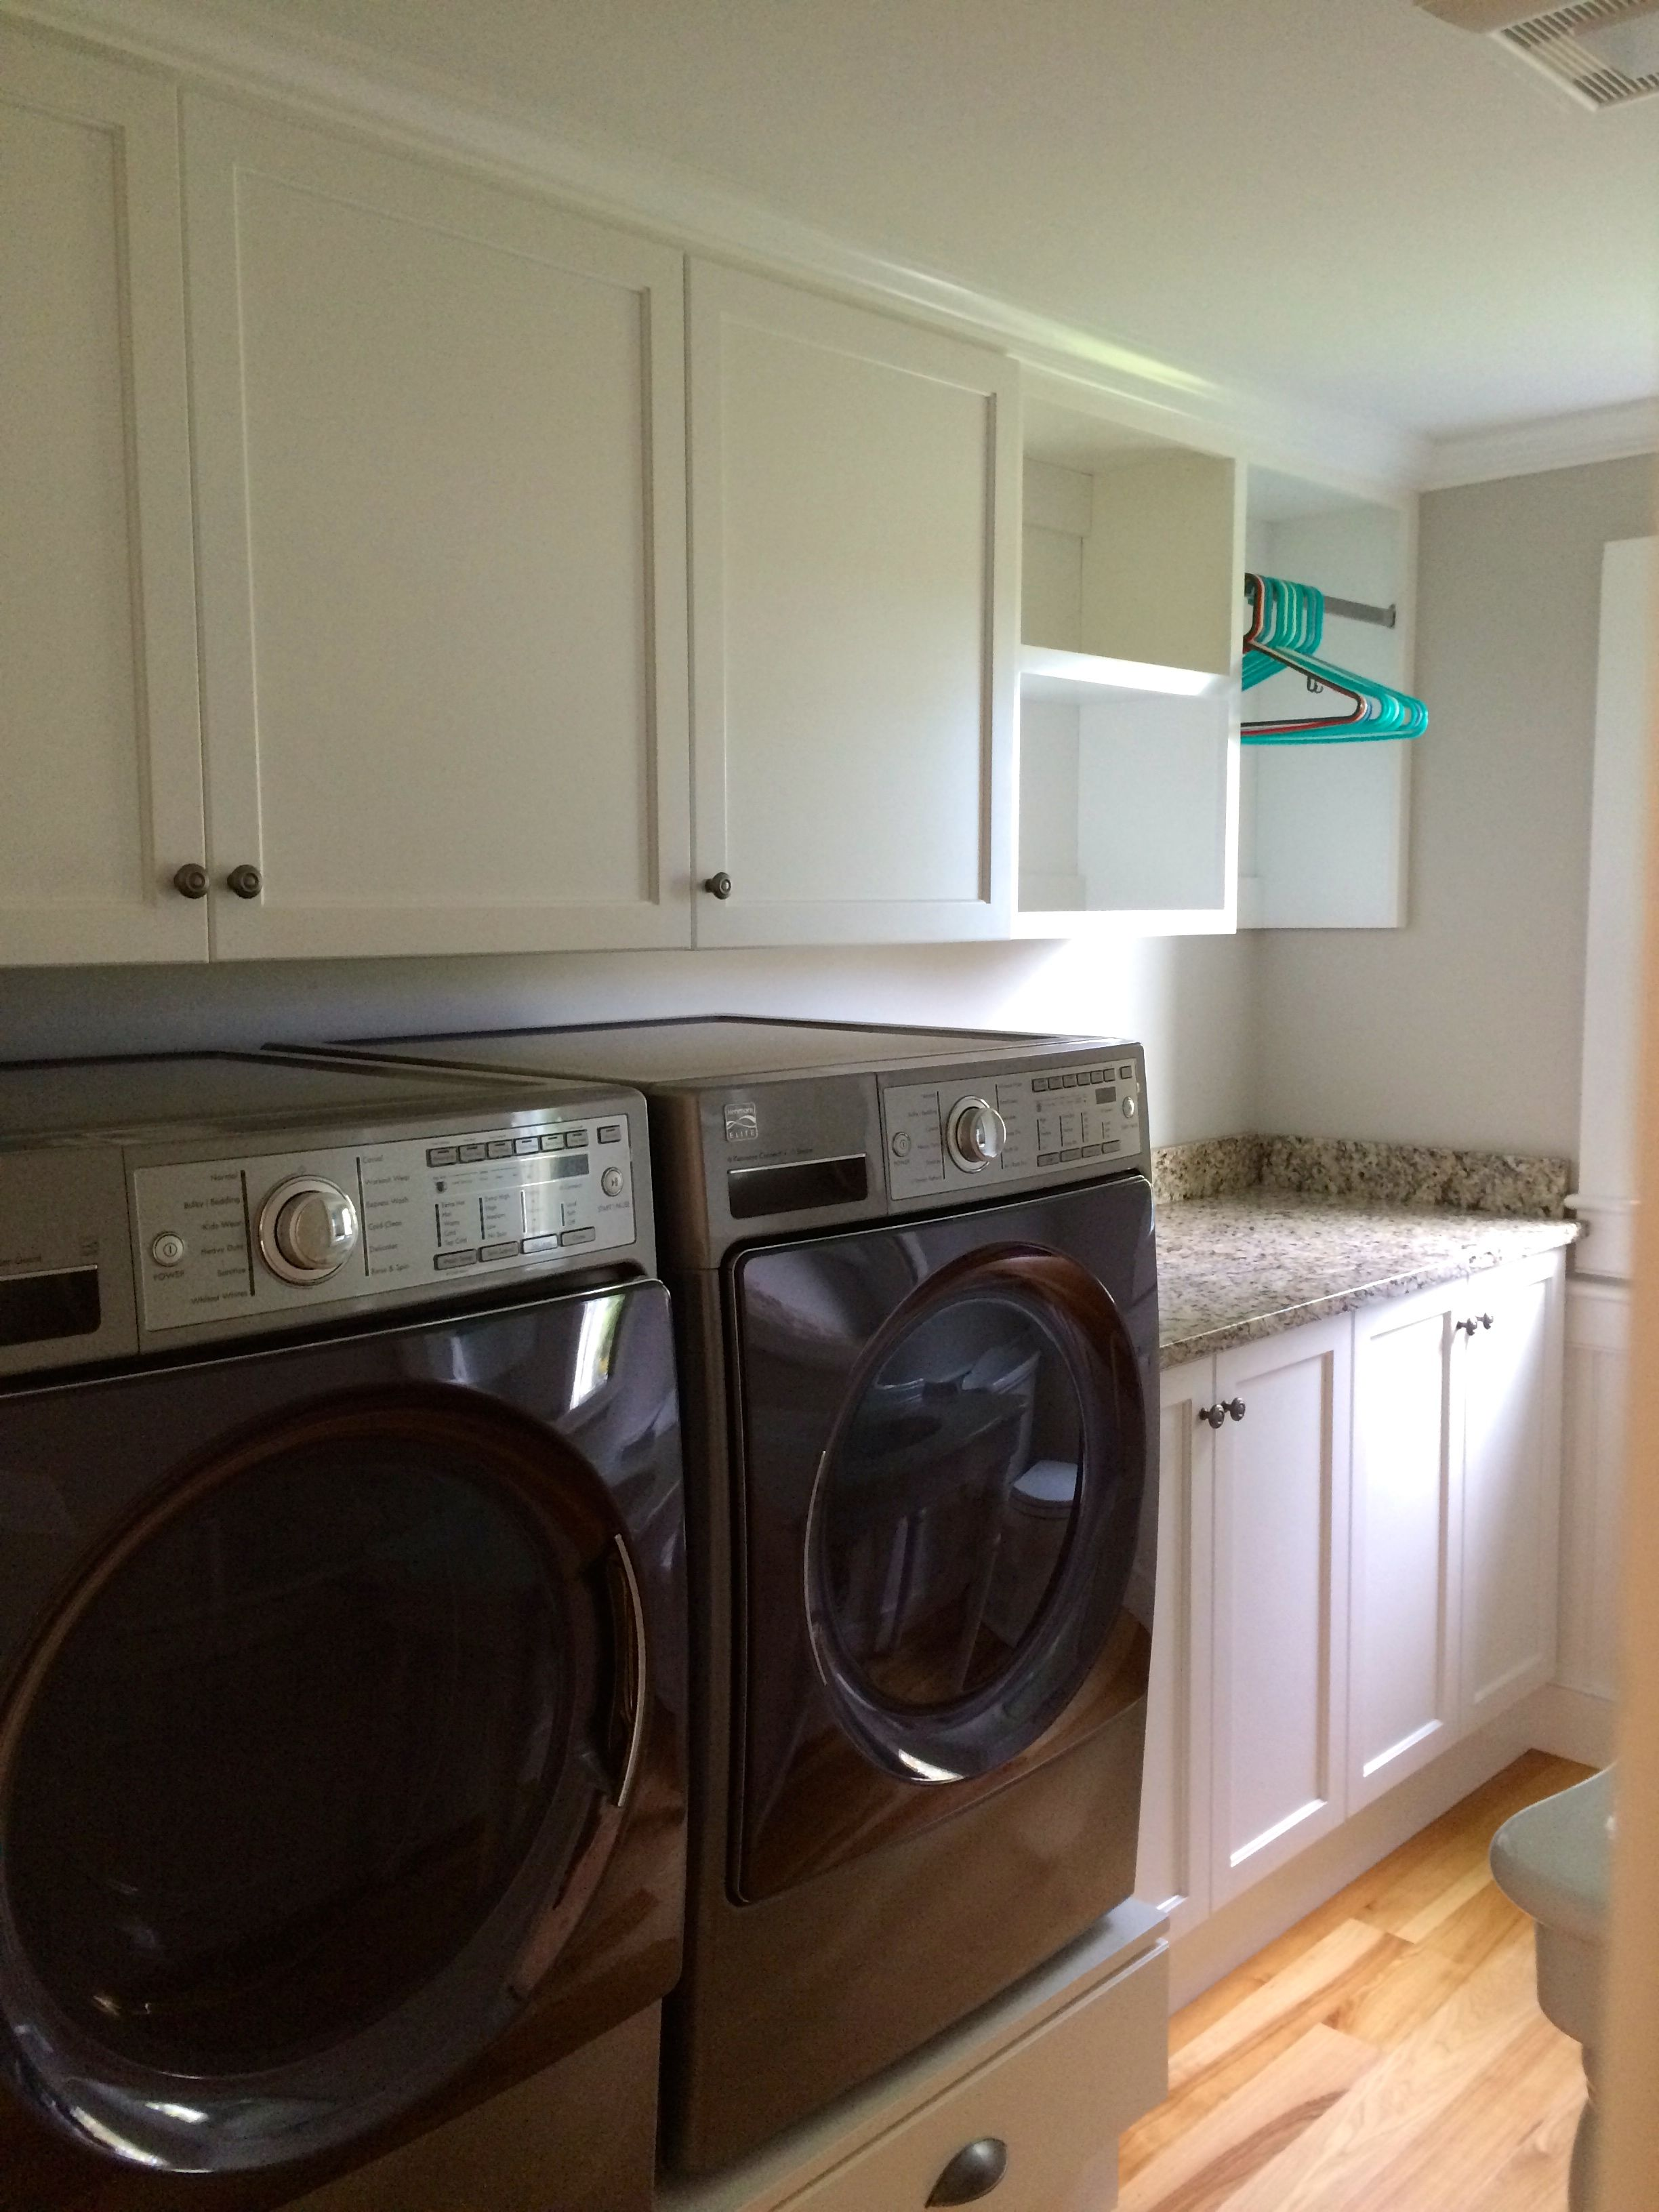 A Well Organized Laundry Room With Cabinetry, Open Shelving, A